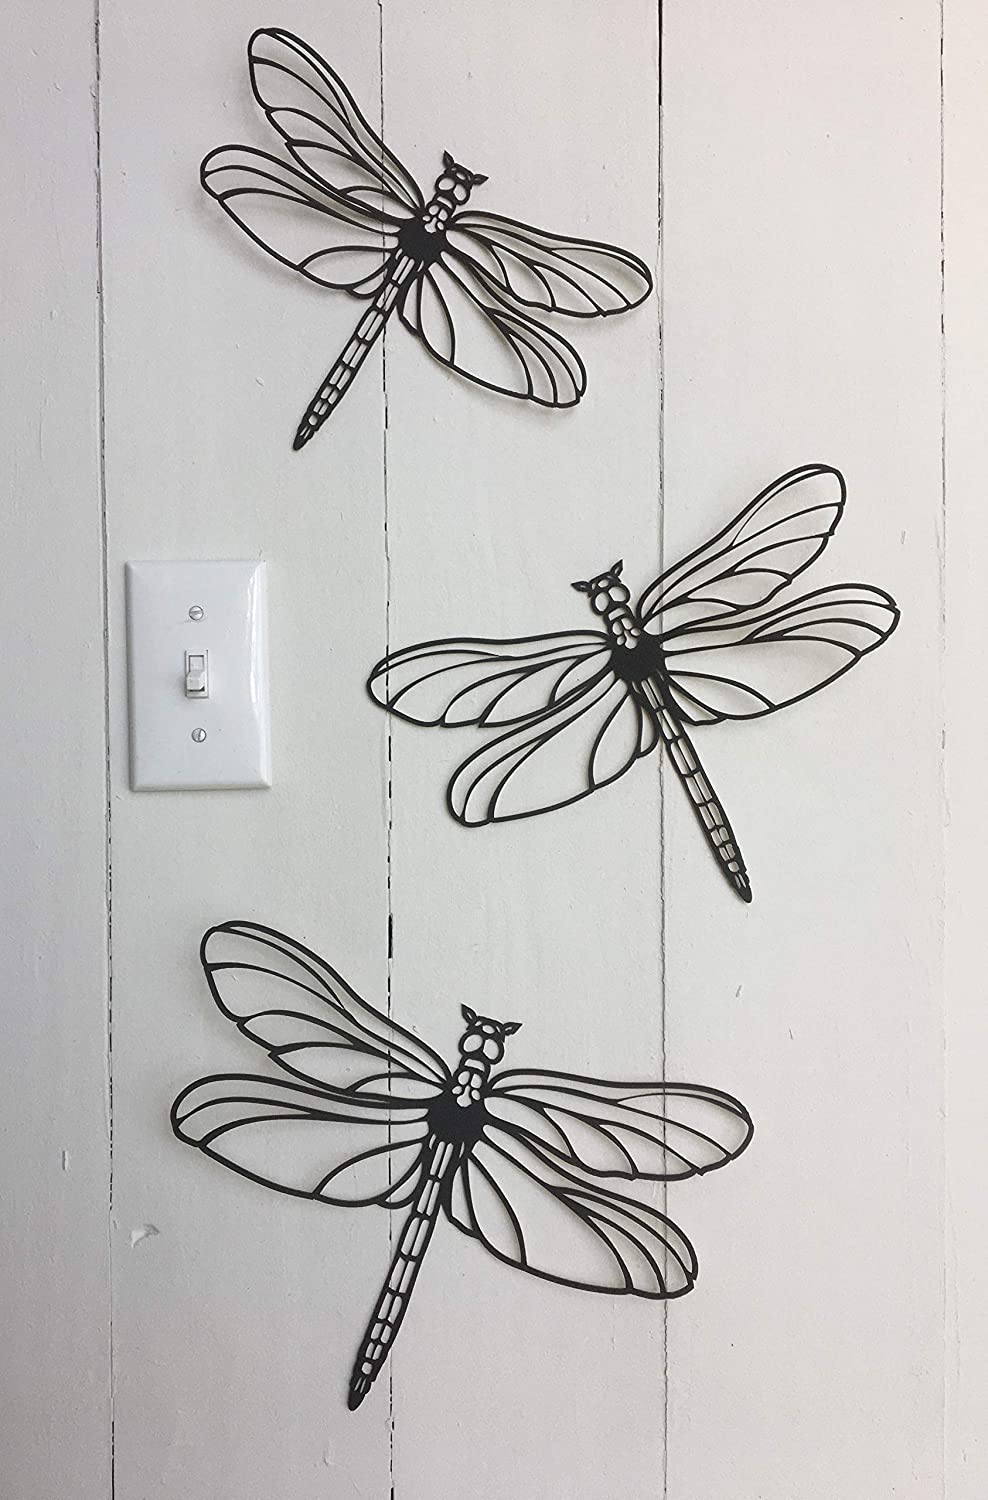 3 Dragonflies - Large Dragonfly Approx 11 x 8 inches - 5 Minute Install This is Not Vinyl Decal - 1/16 inch Thick matboard - Easily Tak-it-Up with Plasti-Tak provided Removable Paintable Wall Décor